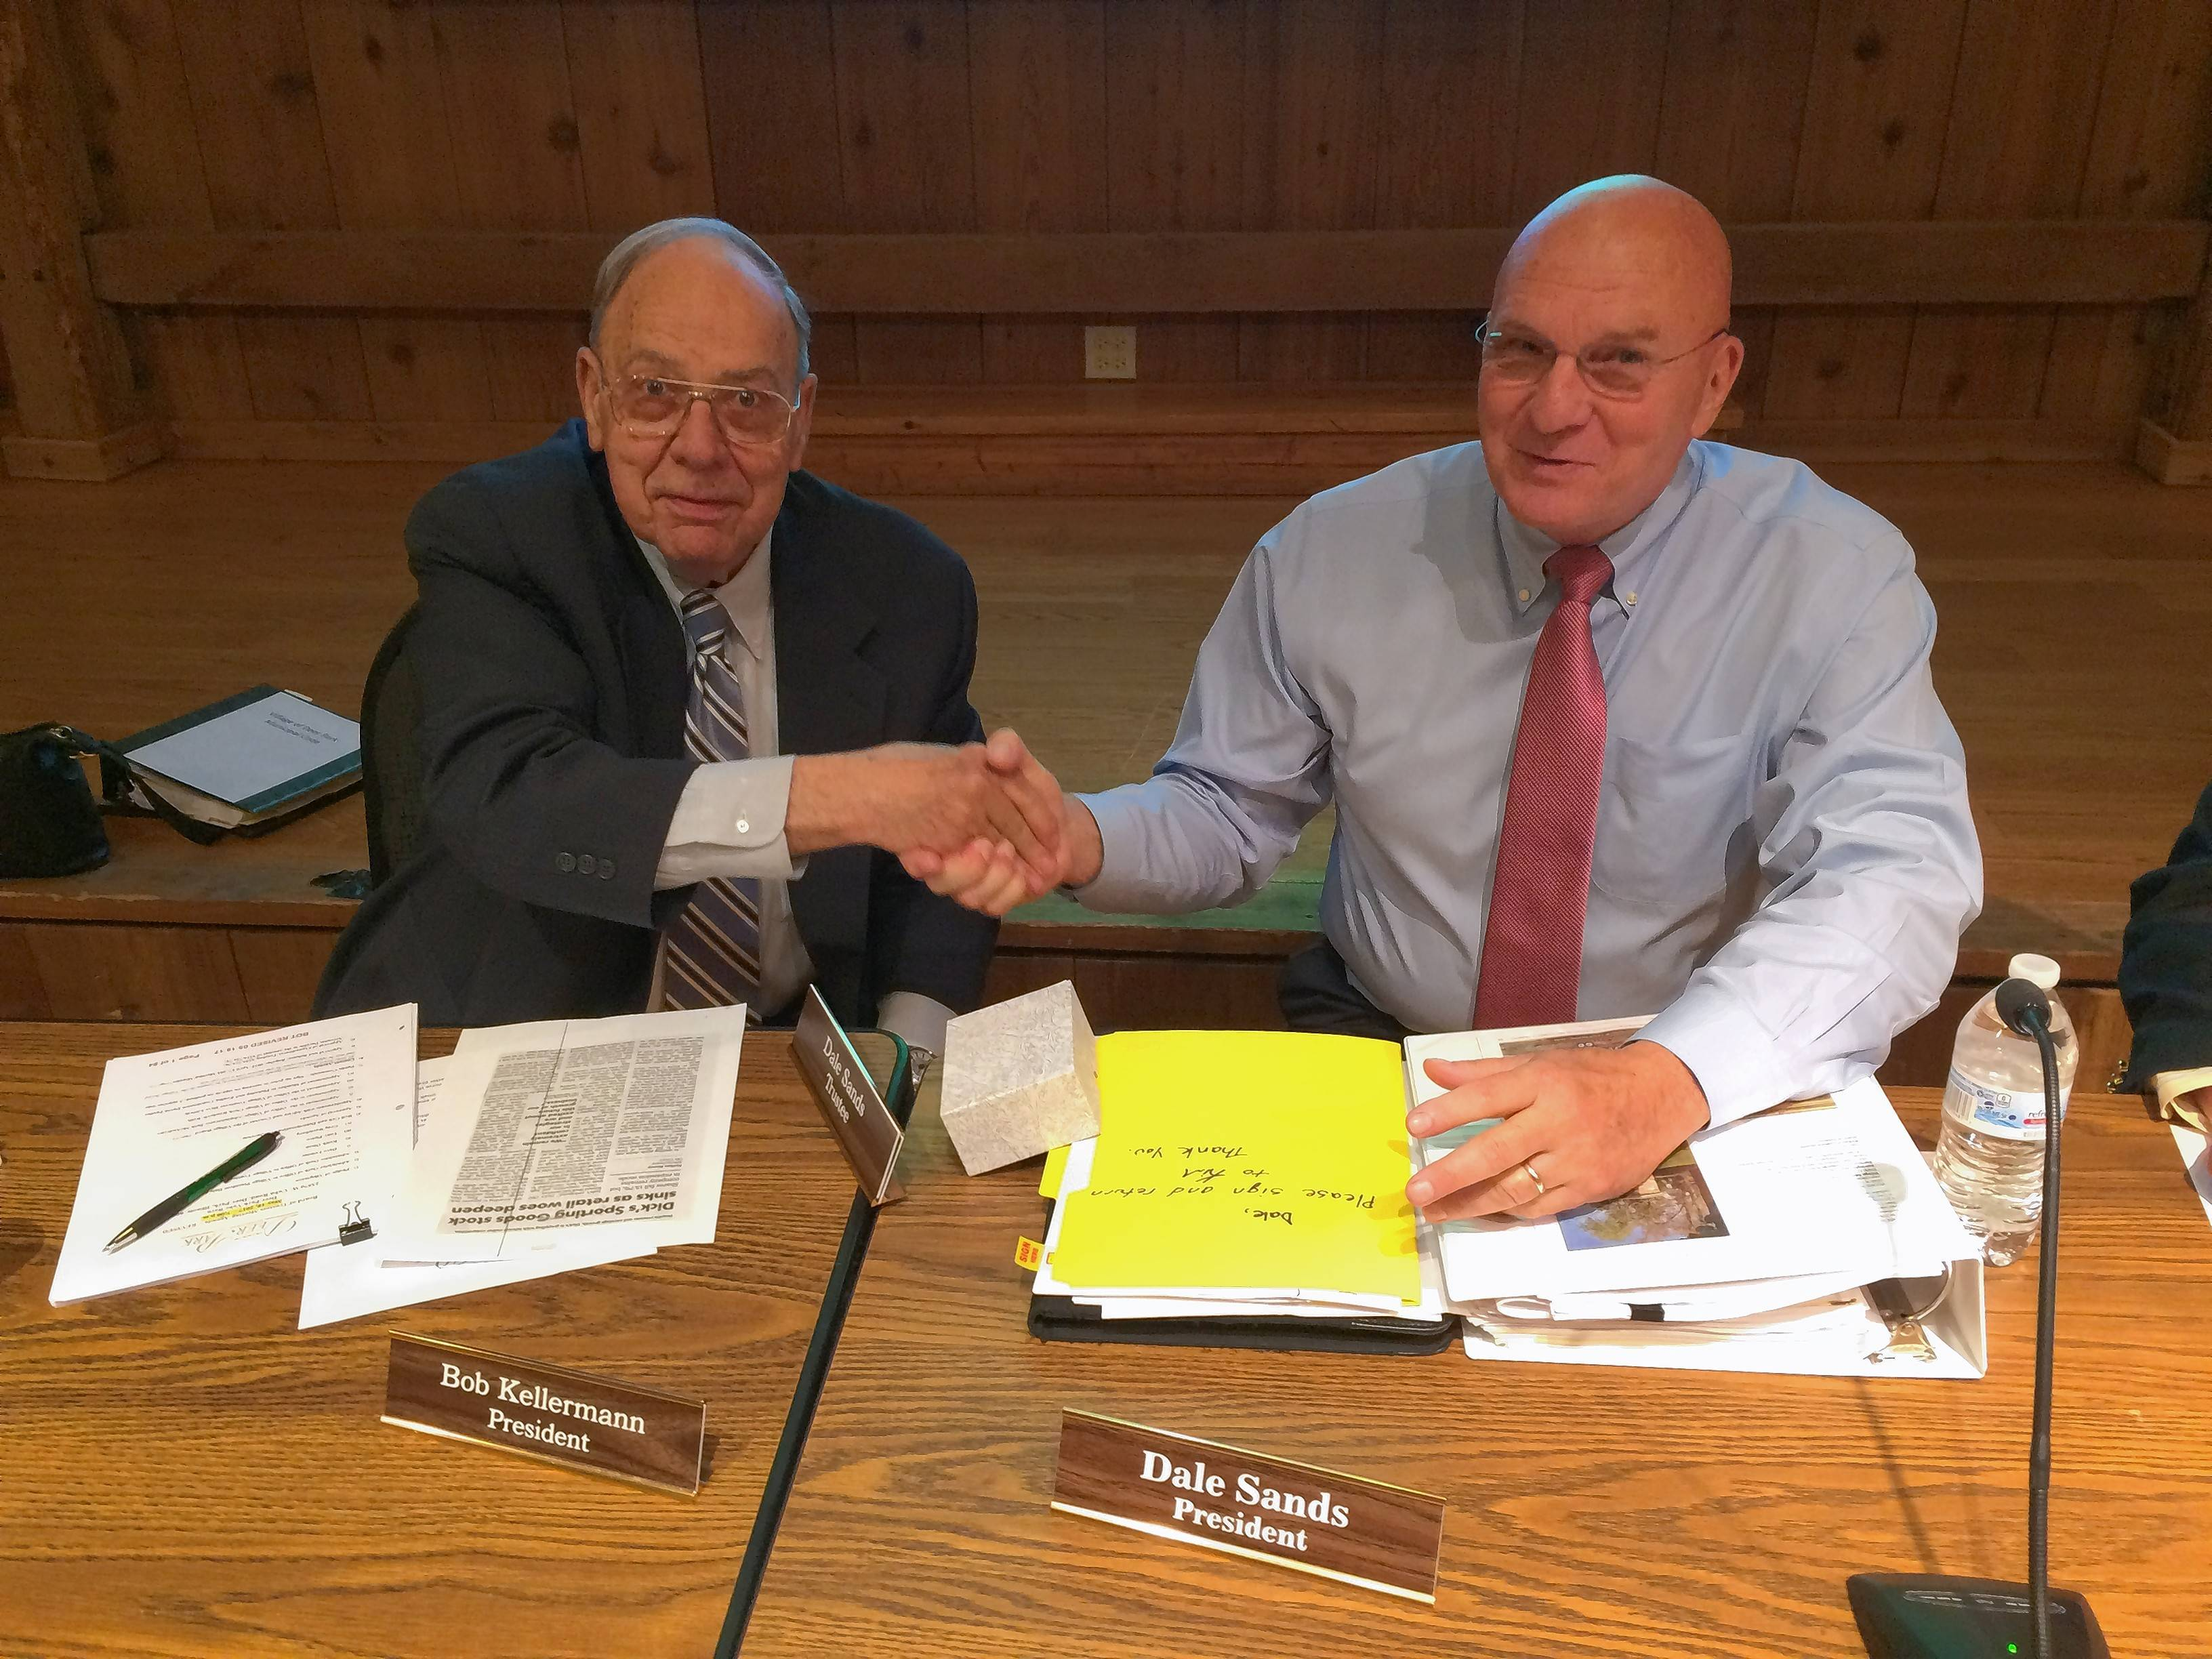 Bob Kellermann, left, ended his eight-year term as Deer Park village president Thursday night. Dale Sands was sworn in as the village's top elected official.